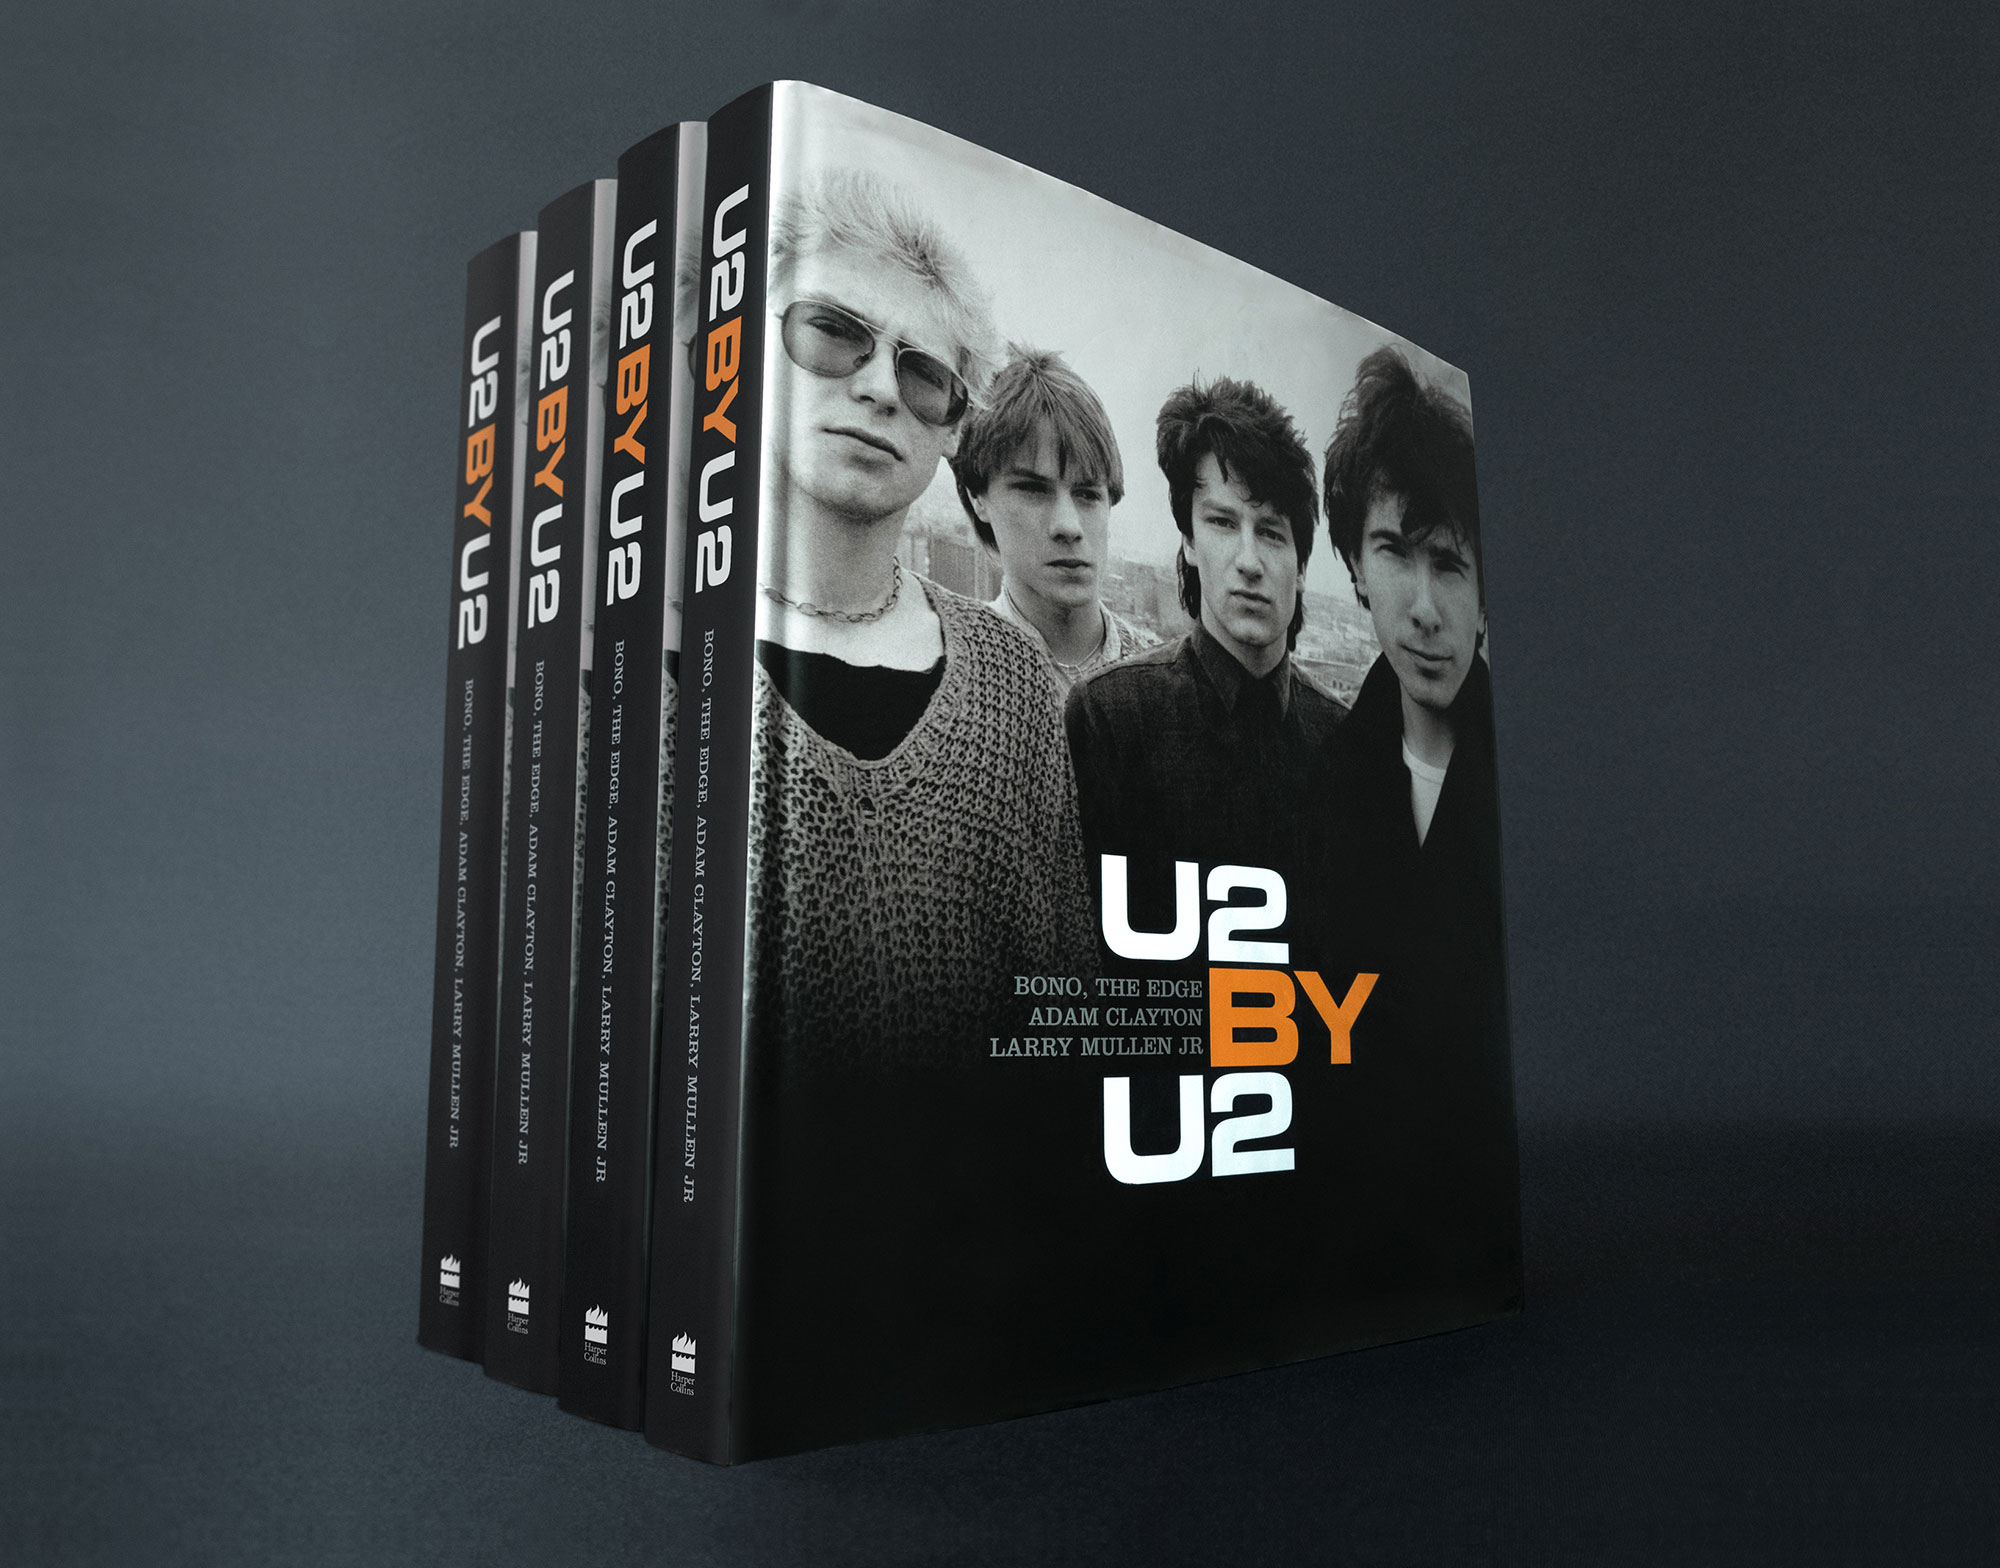 U2 by U2 Book Cover Design Coffee Table Book  Music U2 Graphic Design Editorial Harper Collins Publishing London